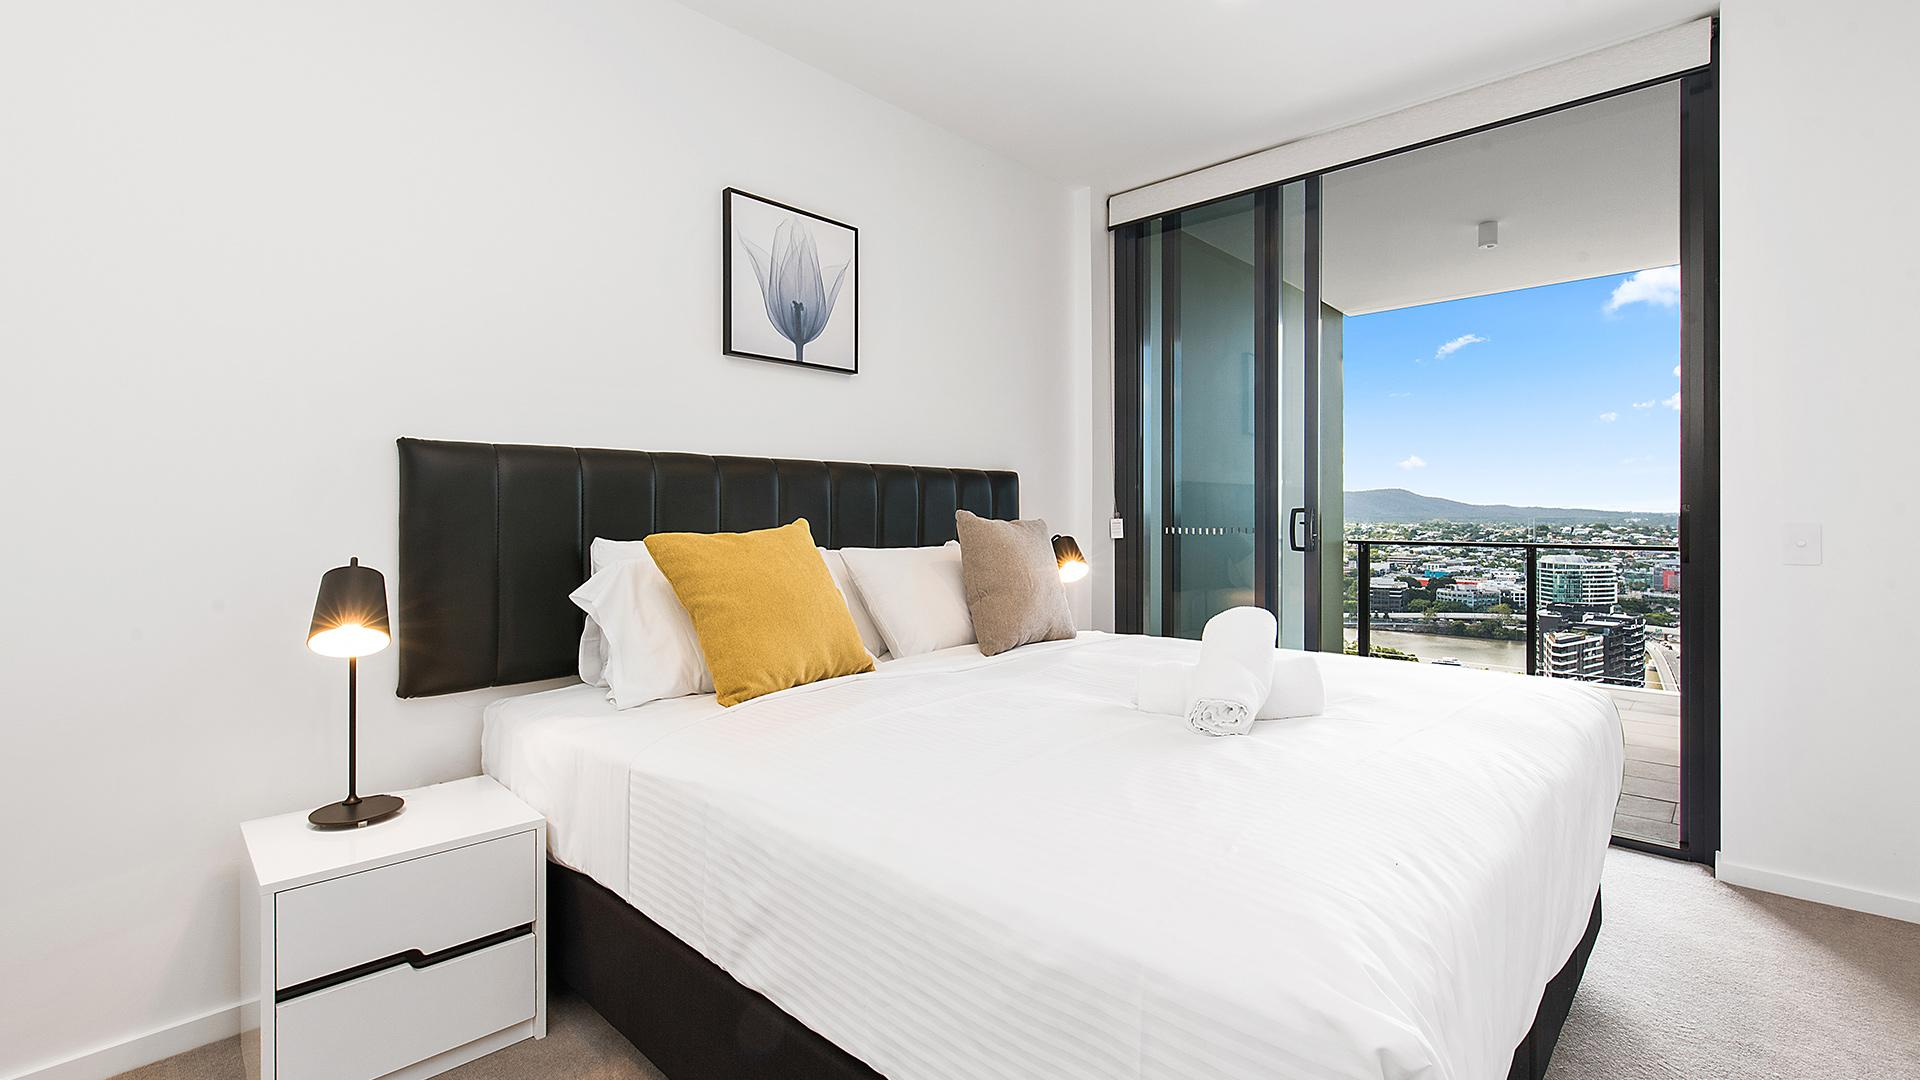 Two-Bedroom Apartment with City View image 1 at Arise Ivy & Eve Apartments by Brisbane City, Queensland, Australia